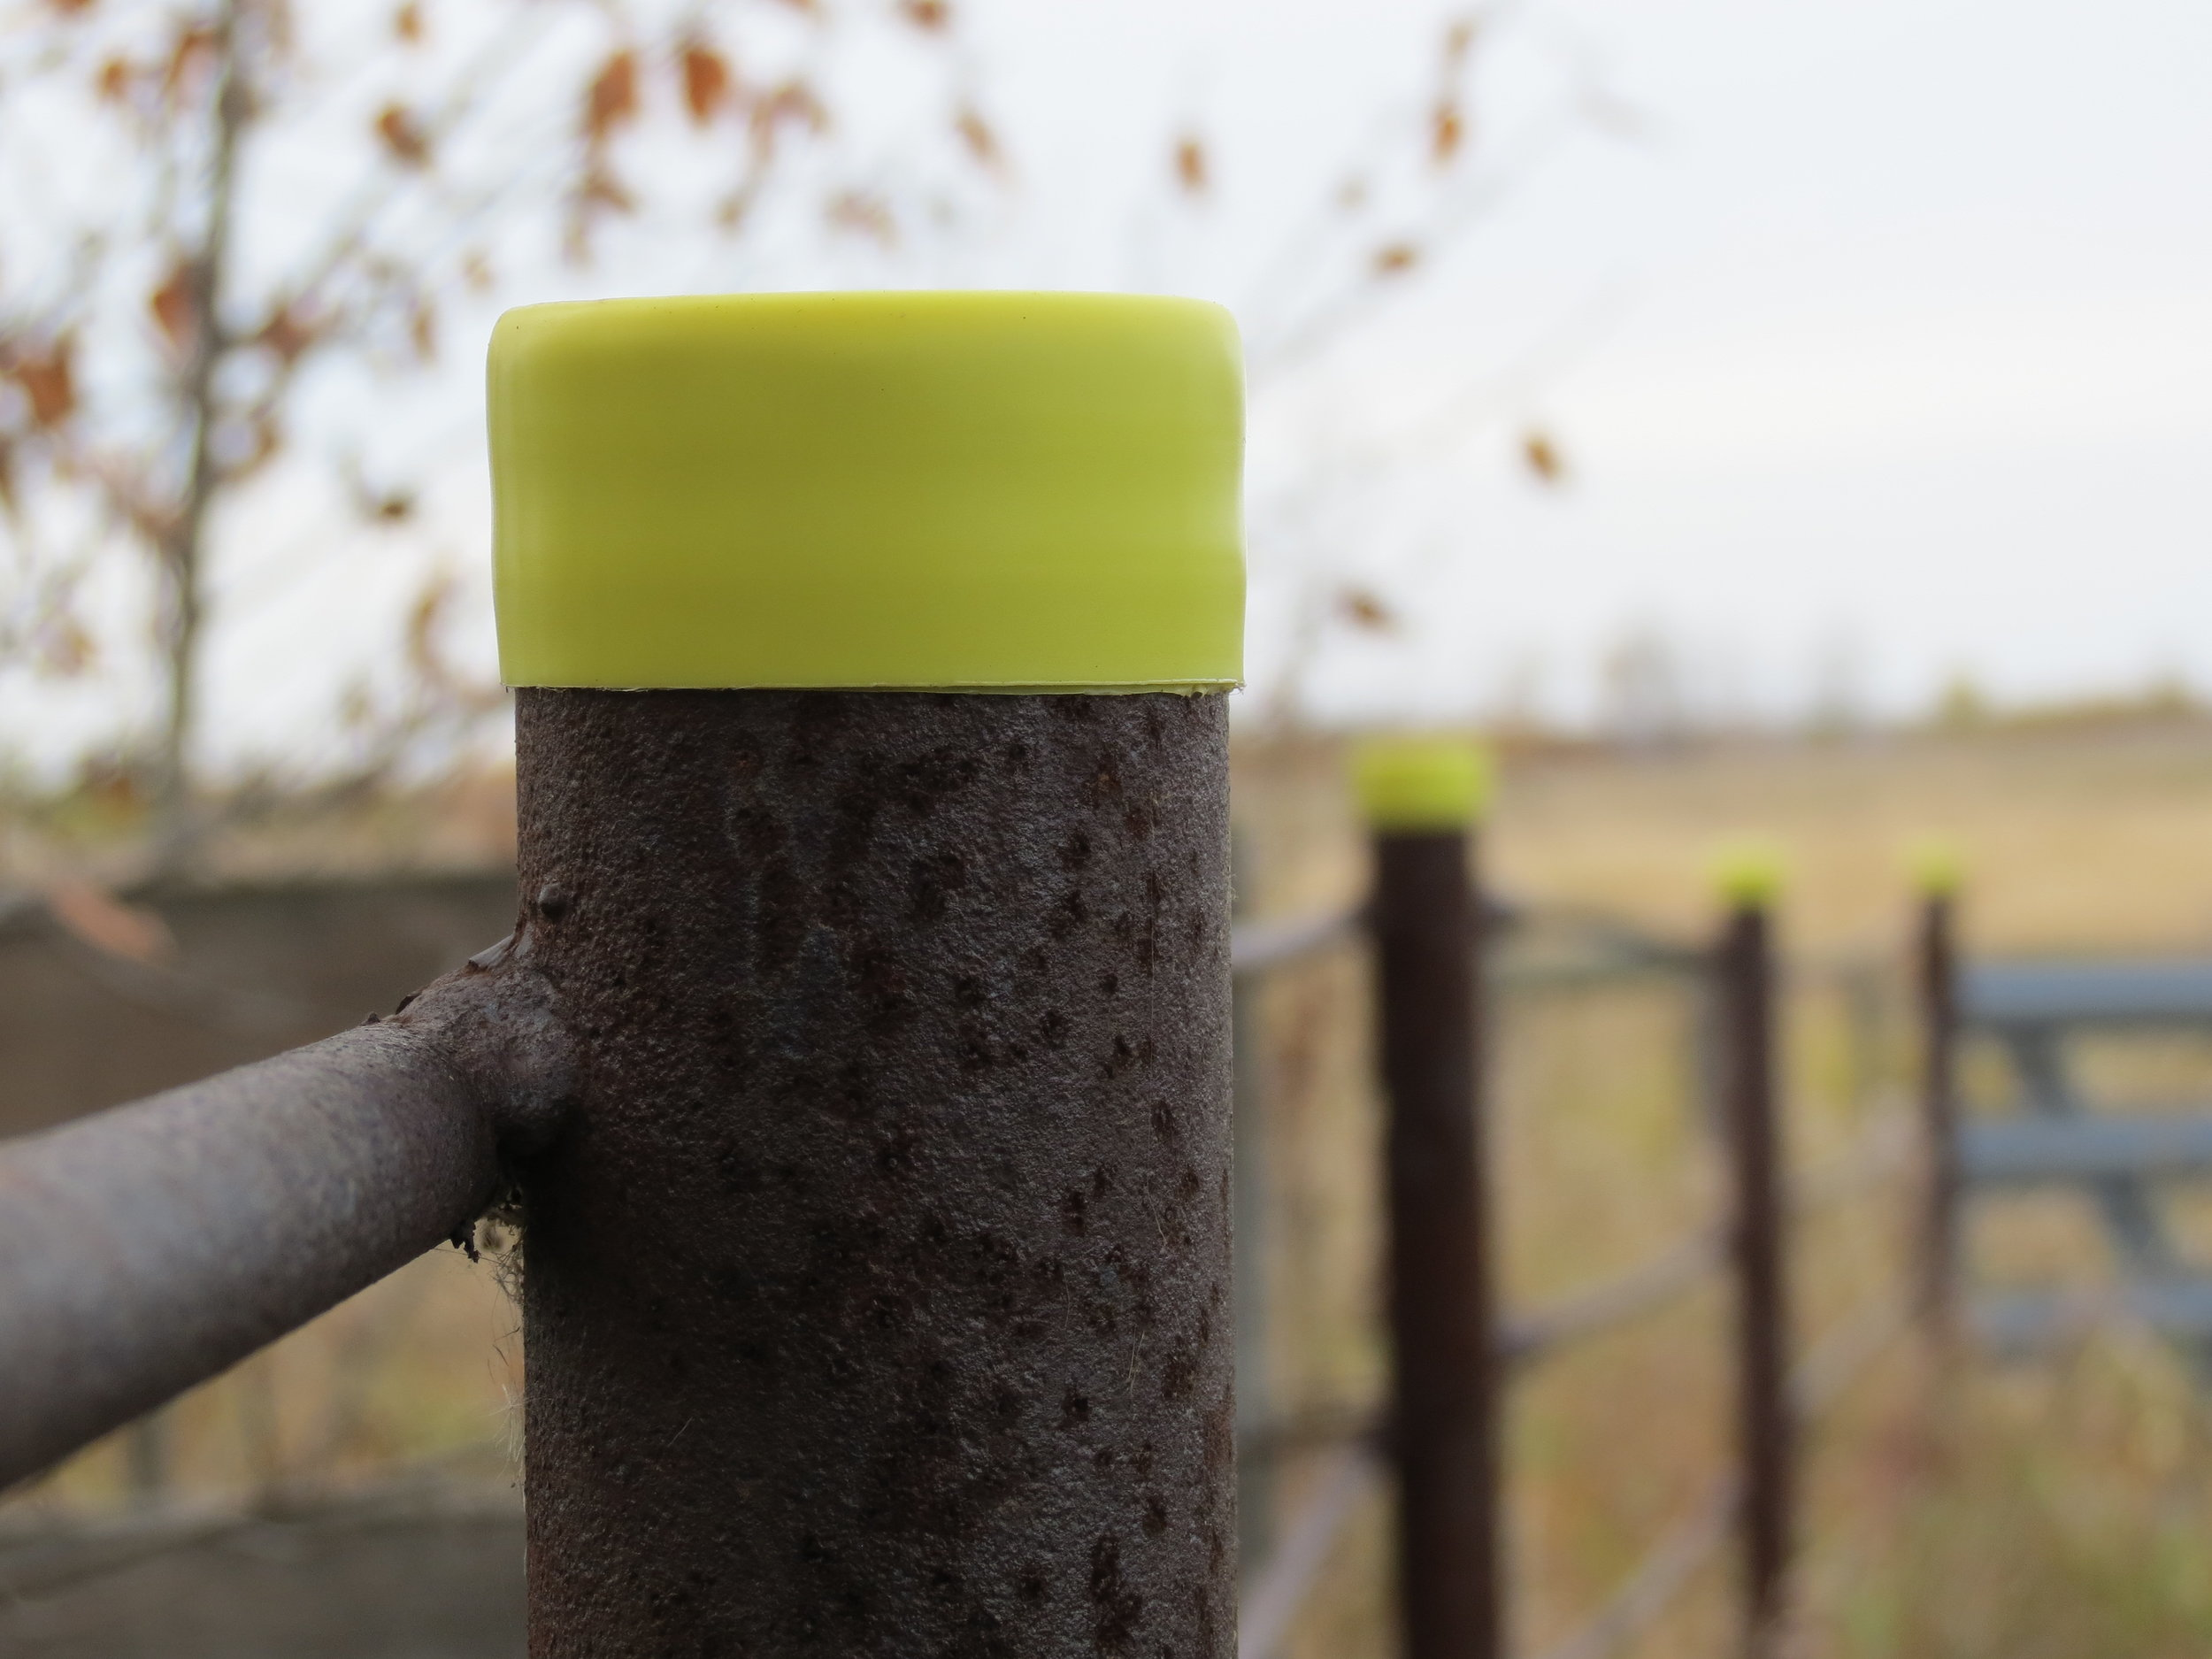 Plastic caps are a simple solution to cover open posts.